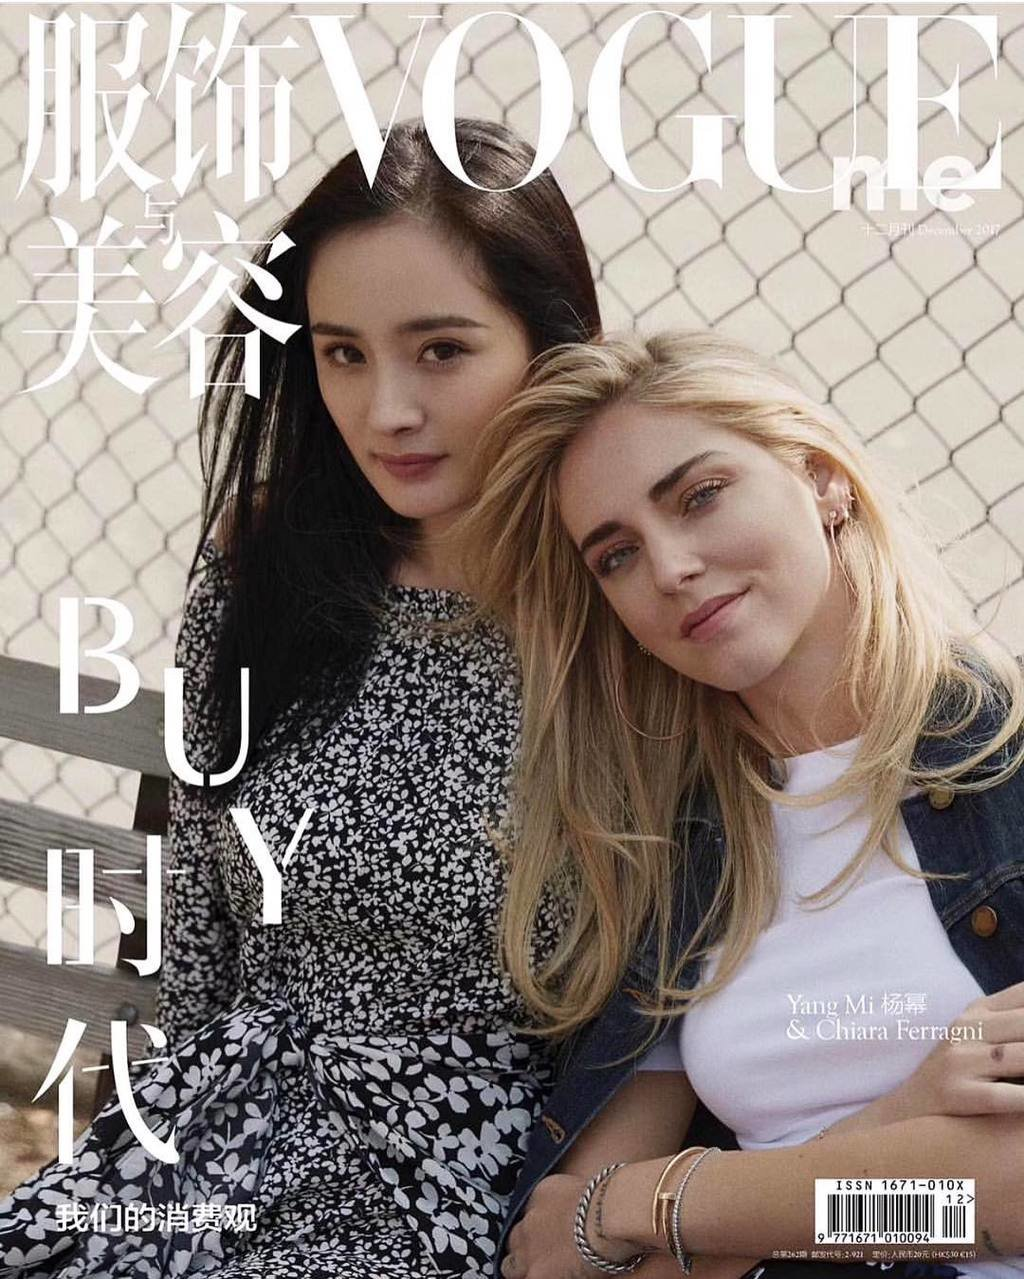 New Vogue cover: @vogueme @voguechina December 2017 issue with Yang Mi shot in New York 🇨🇳 #TheBlondeSaladNeverStops Thank you @angelica_cheung image